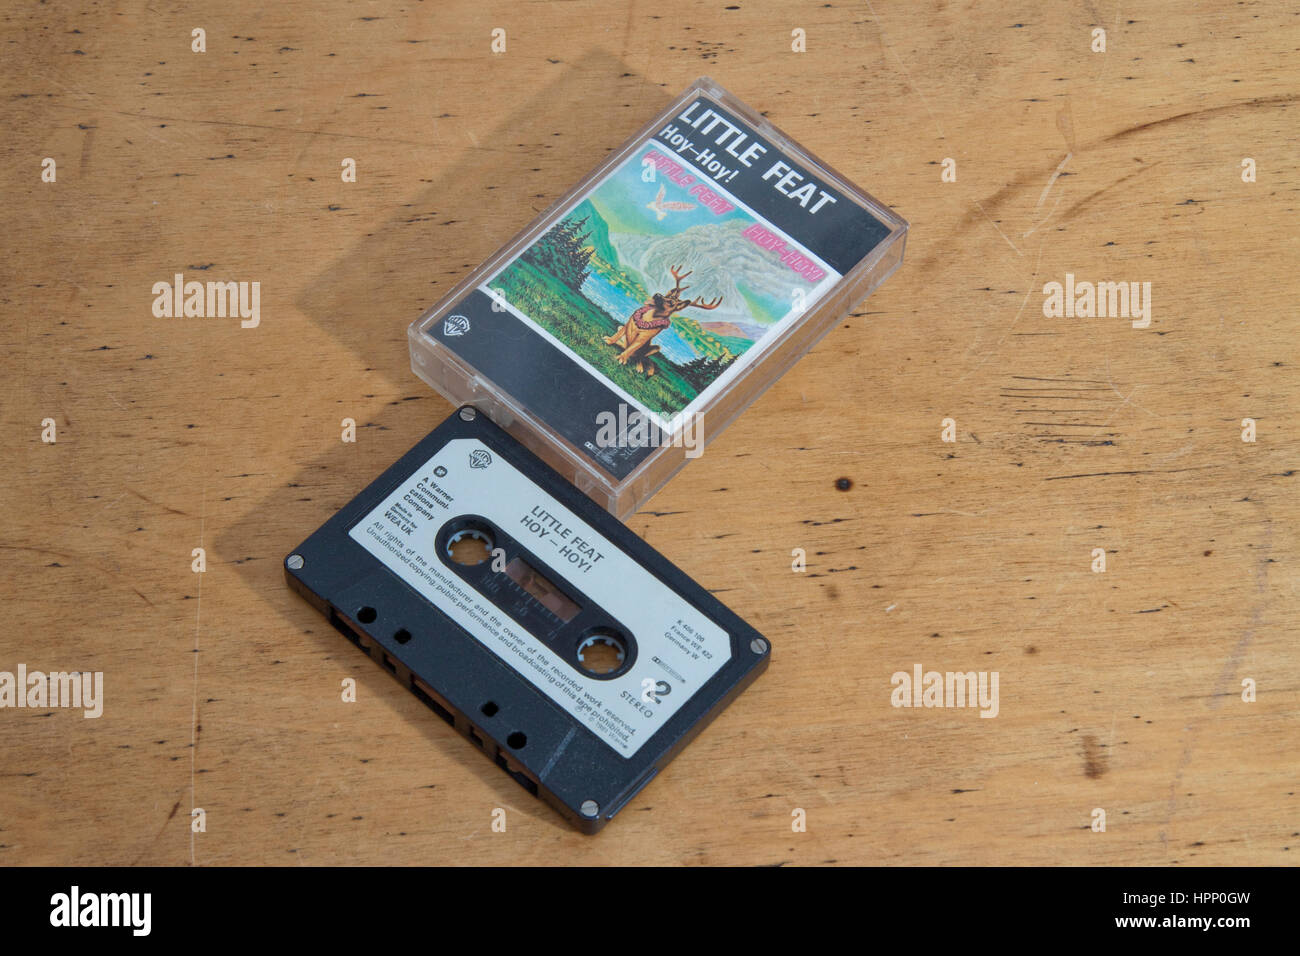 Band Little Feat's album Hoy-Hoy! on cassette - Stock Image